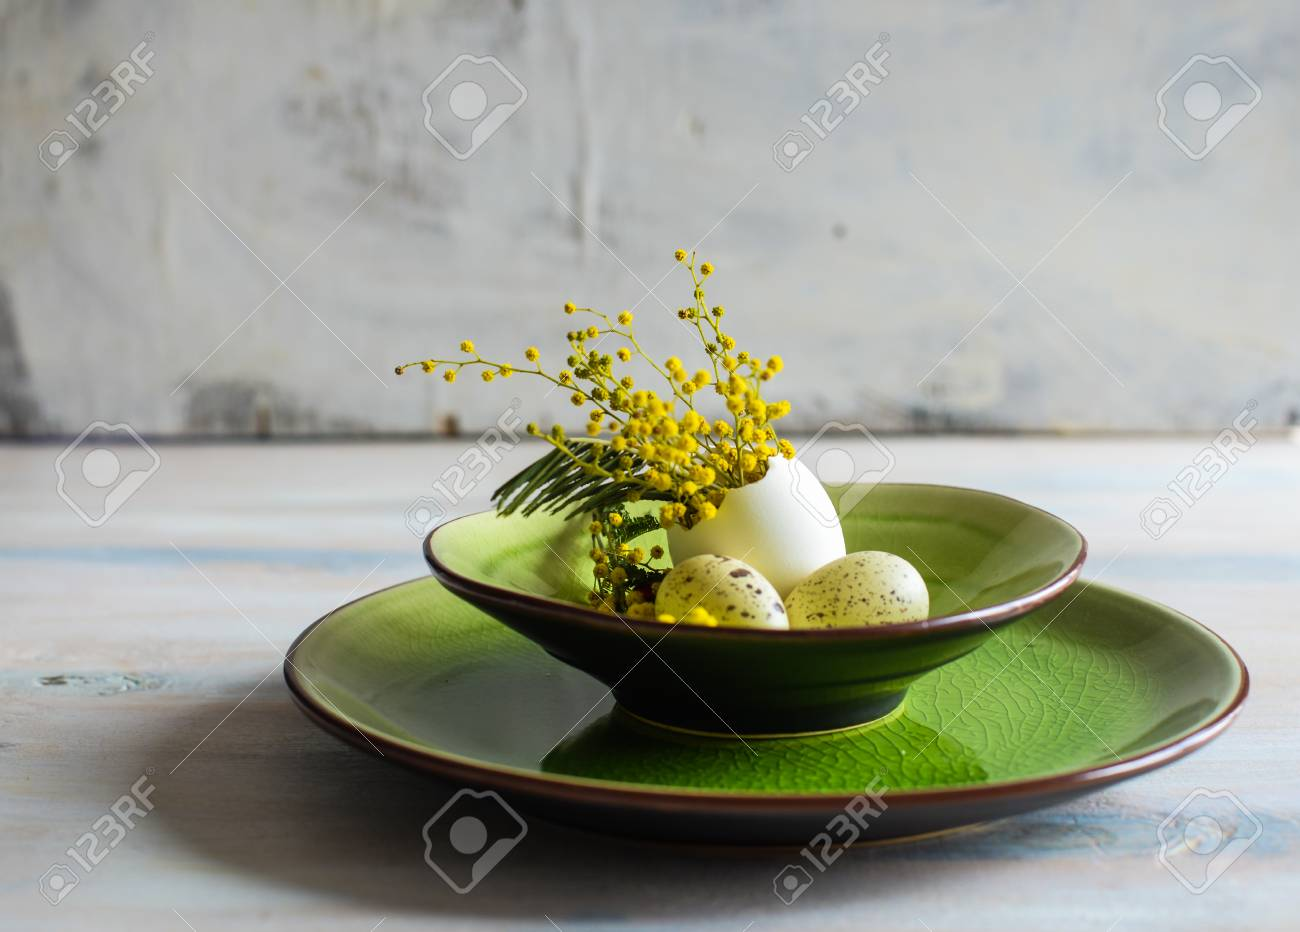 Stock Photo - Table setting for Easter dinner with blooming mimosa acacia flowers and eggs on bright green plates & Table Setting For Easter Dinner With Blooming Mimosa Acacia Flowers ...